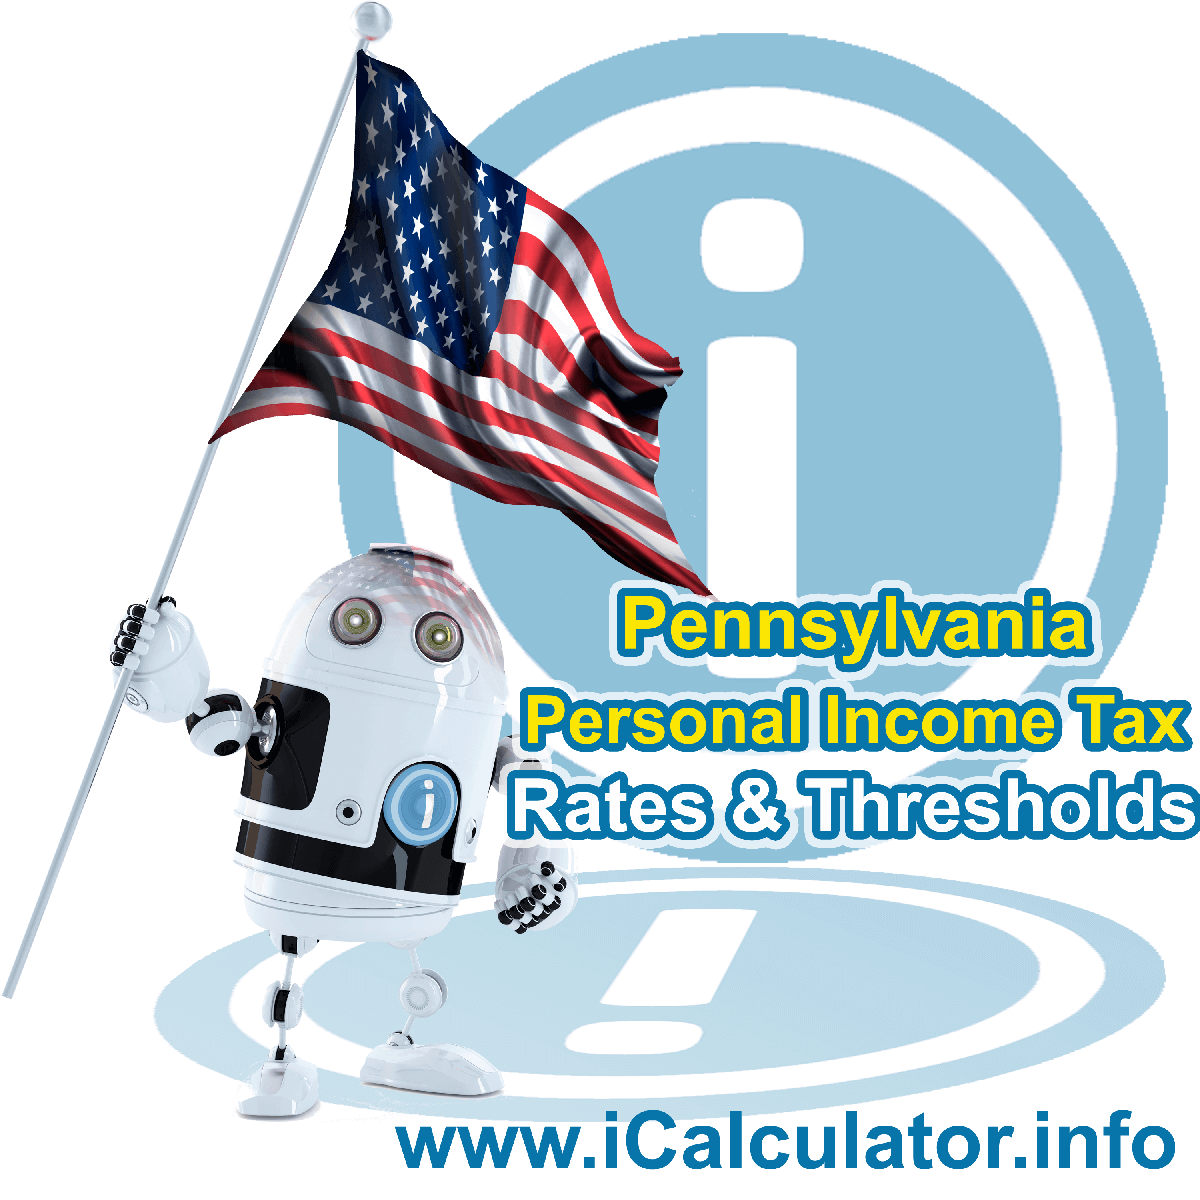 Pennsylvania State Tax Tables 2021. This image displays details of the Pennsylvania State Tax Tables for the 2021 tax return year which is provided in support of the 2021 US Tax Calculator